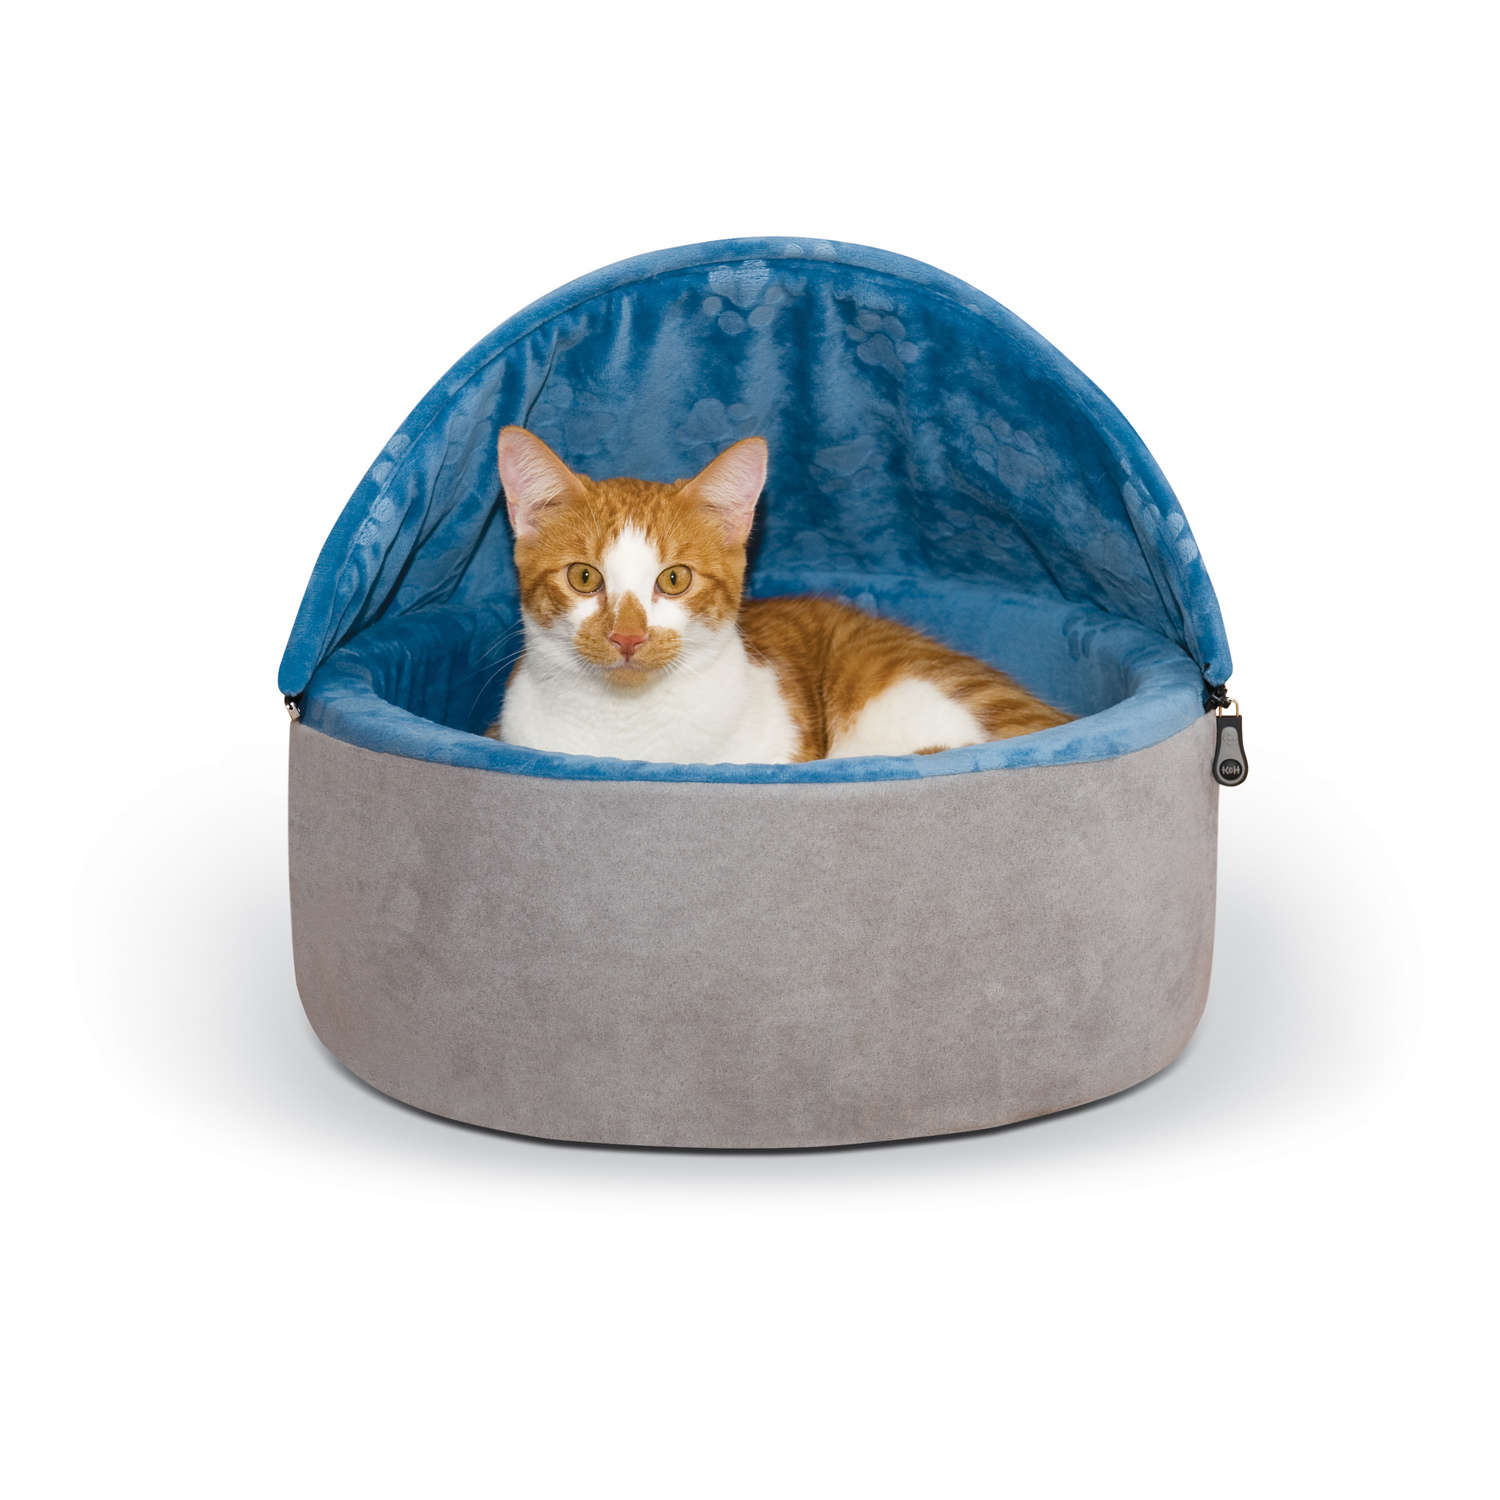 "K&H Pet Products Self-Warming Kitty Bed Hooded Small Blue/Gray 16"" x 16"" x 12.5"" Cat Beds - London the Local"